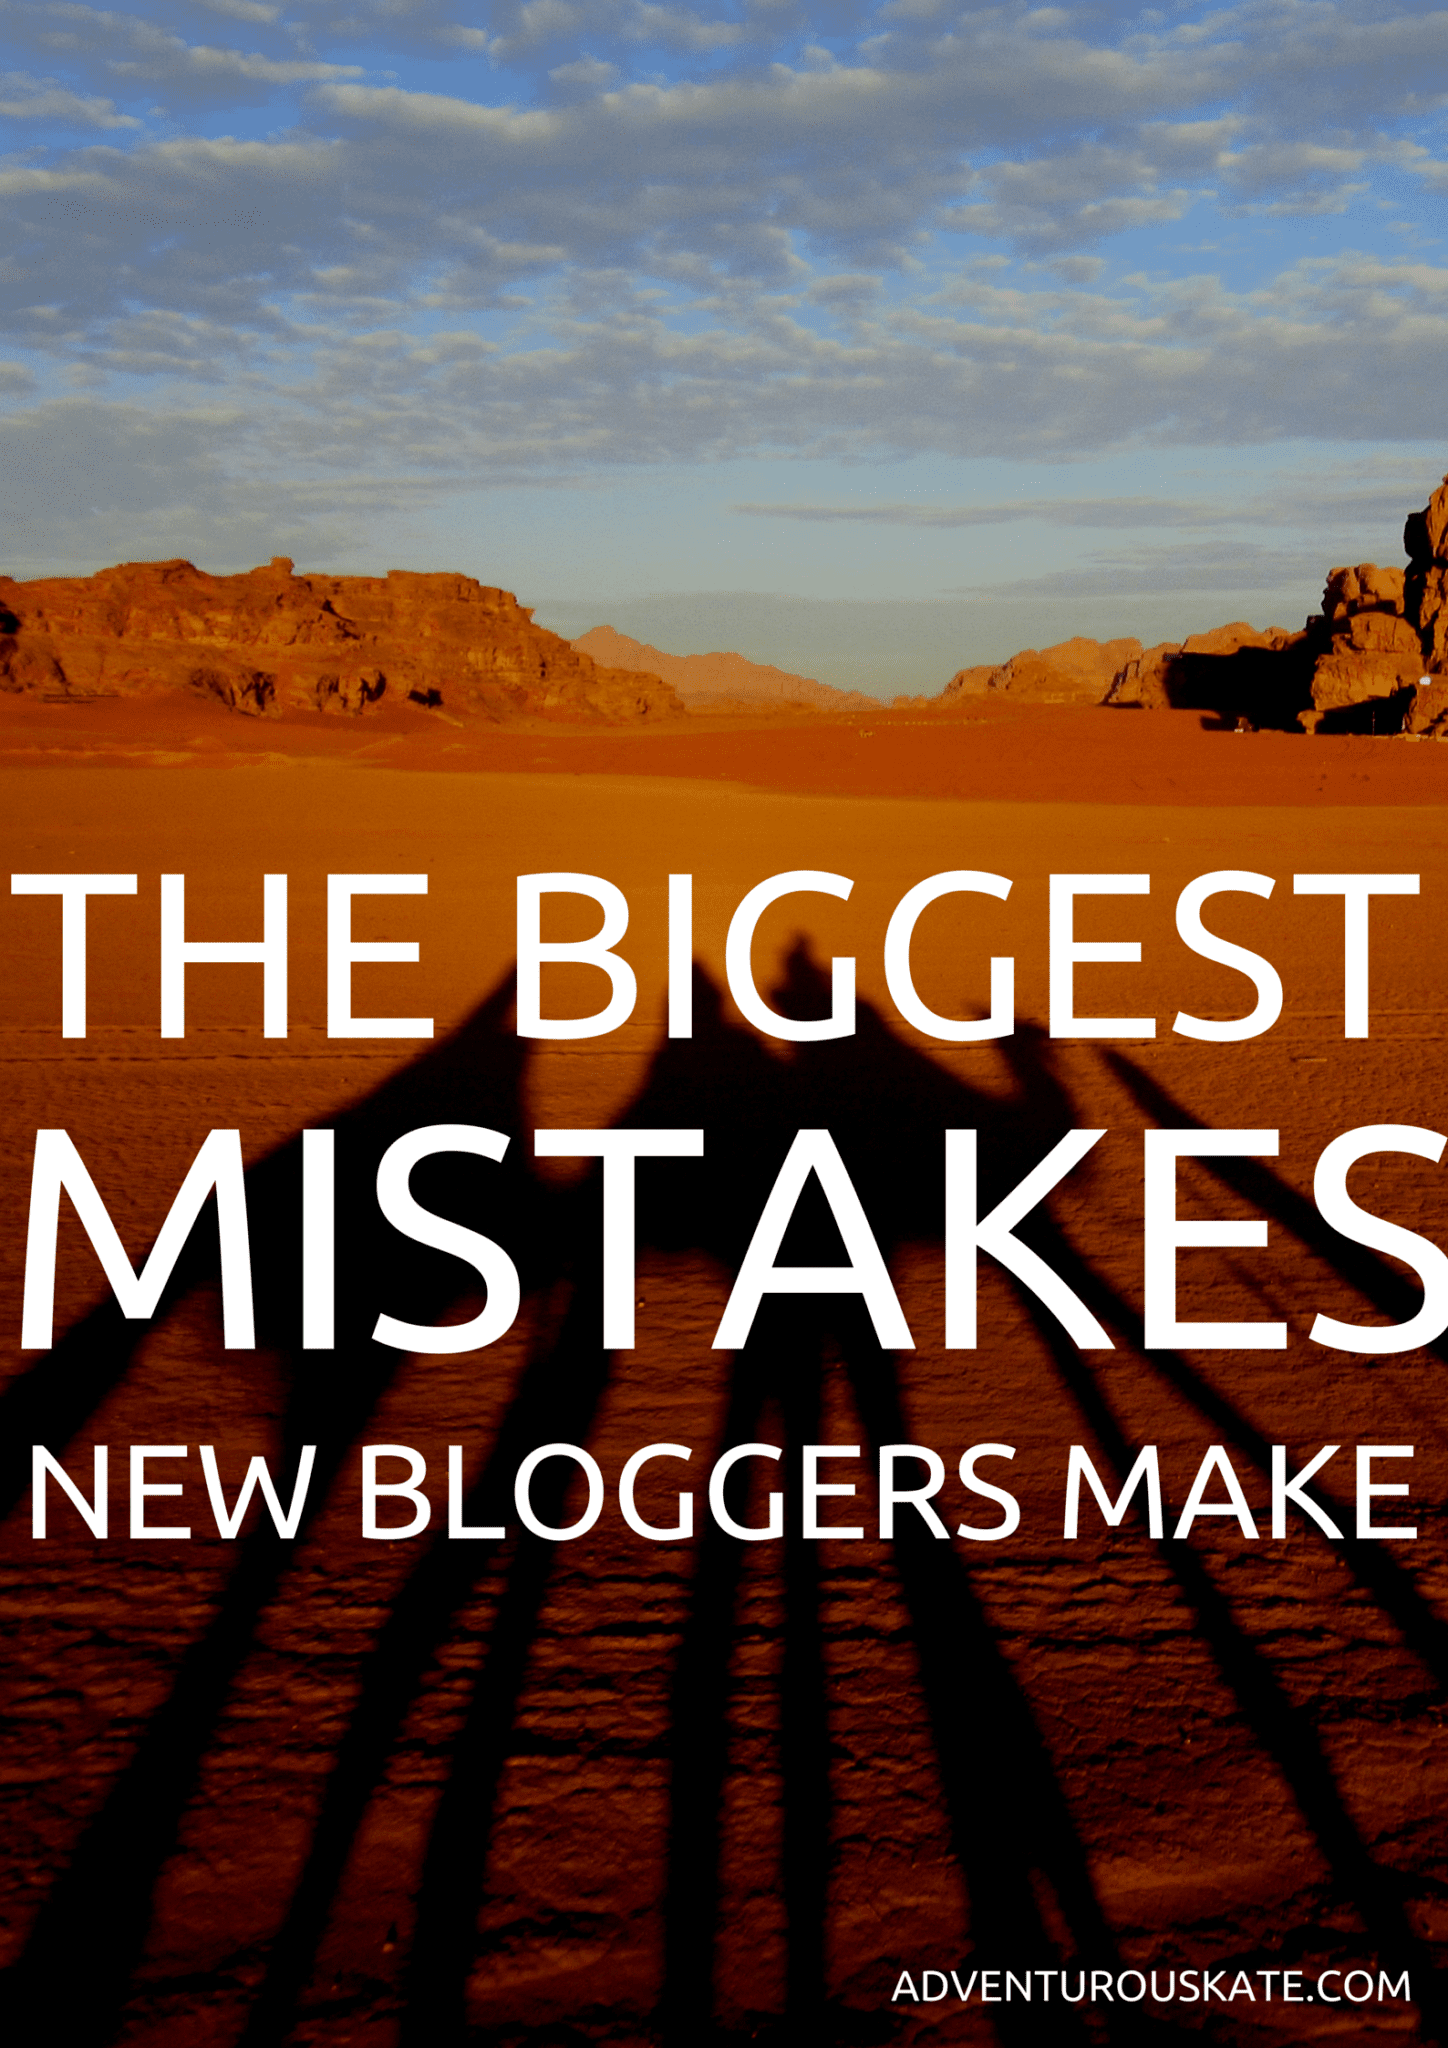 THE BIGGEST MISTAKES